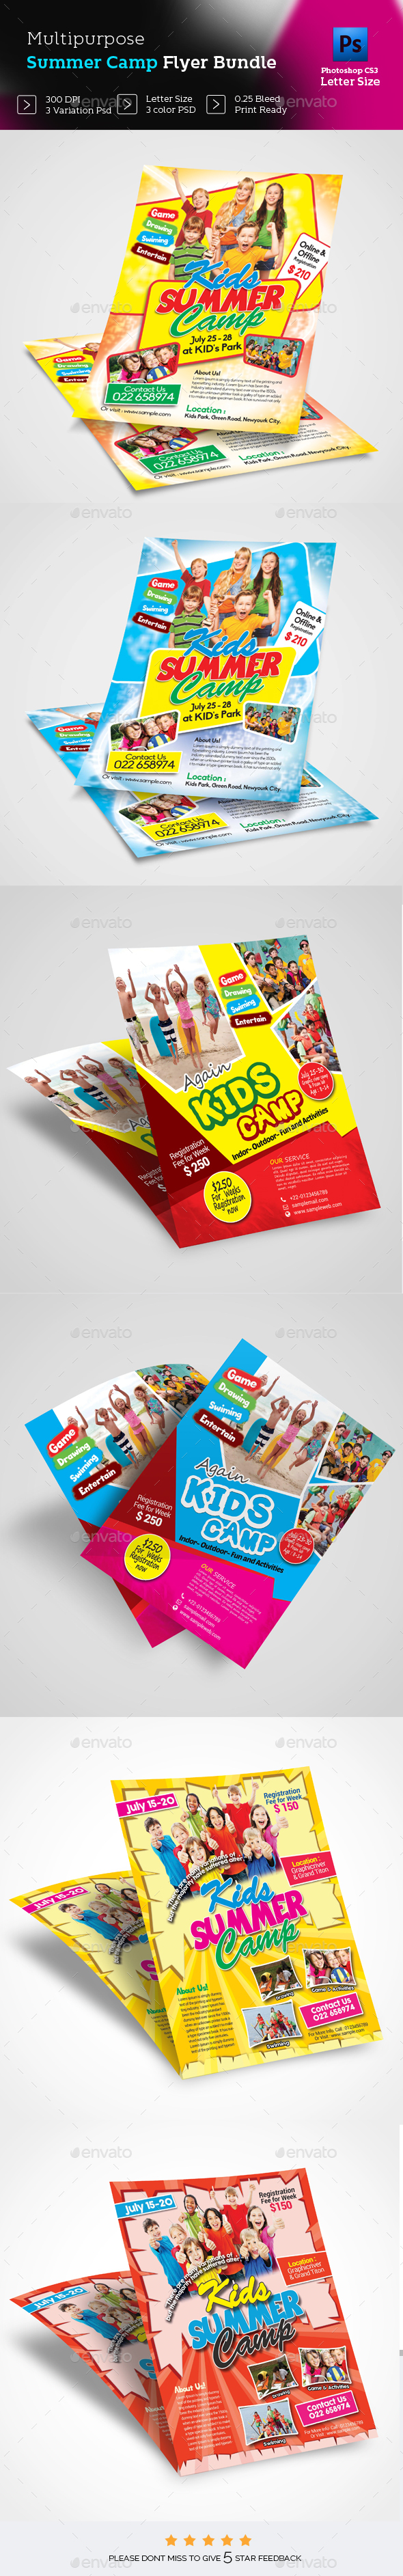 Kids Summer Camp Flyer Bundle